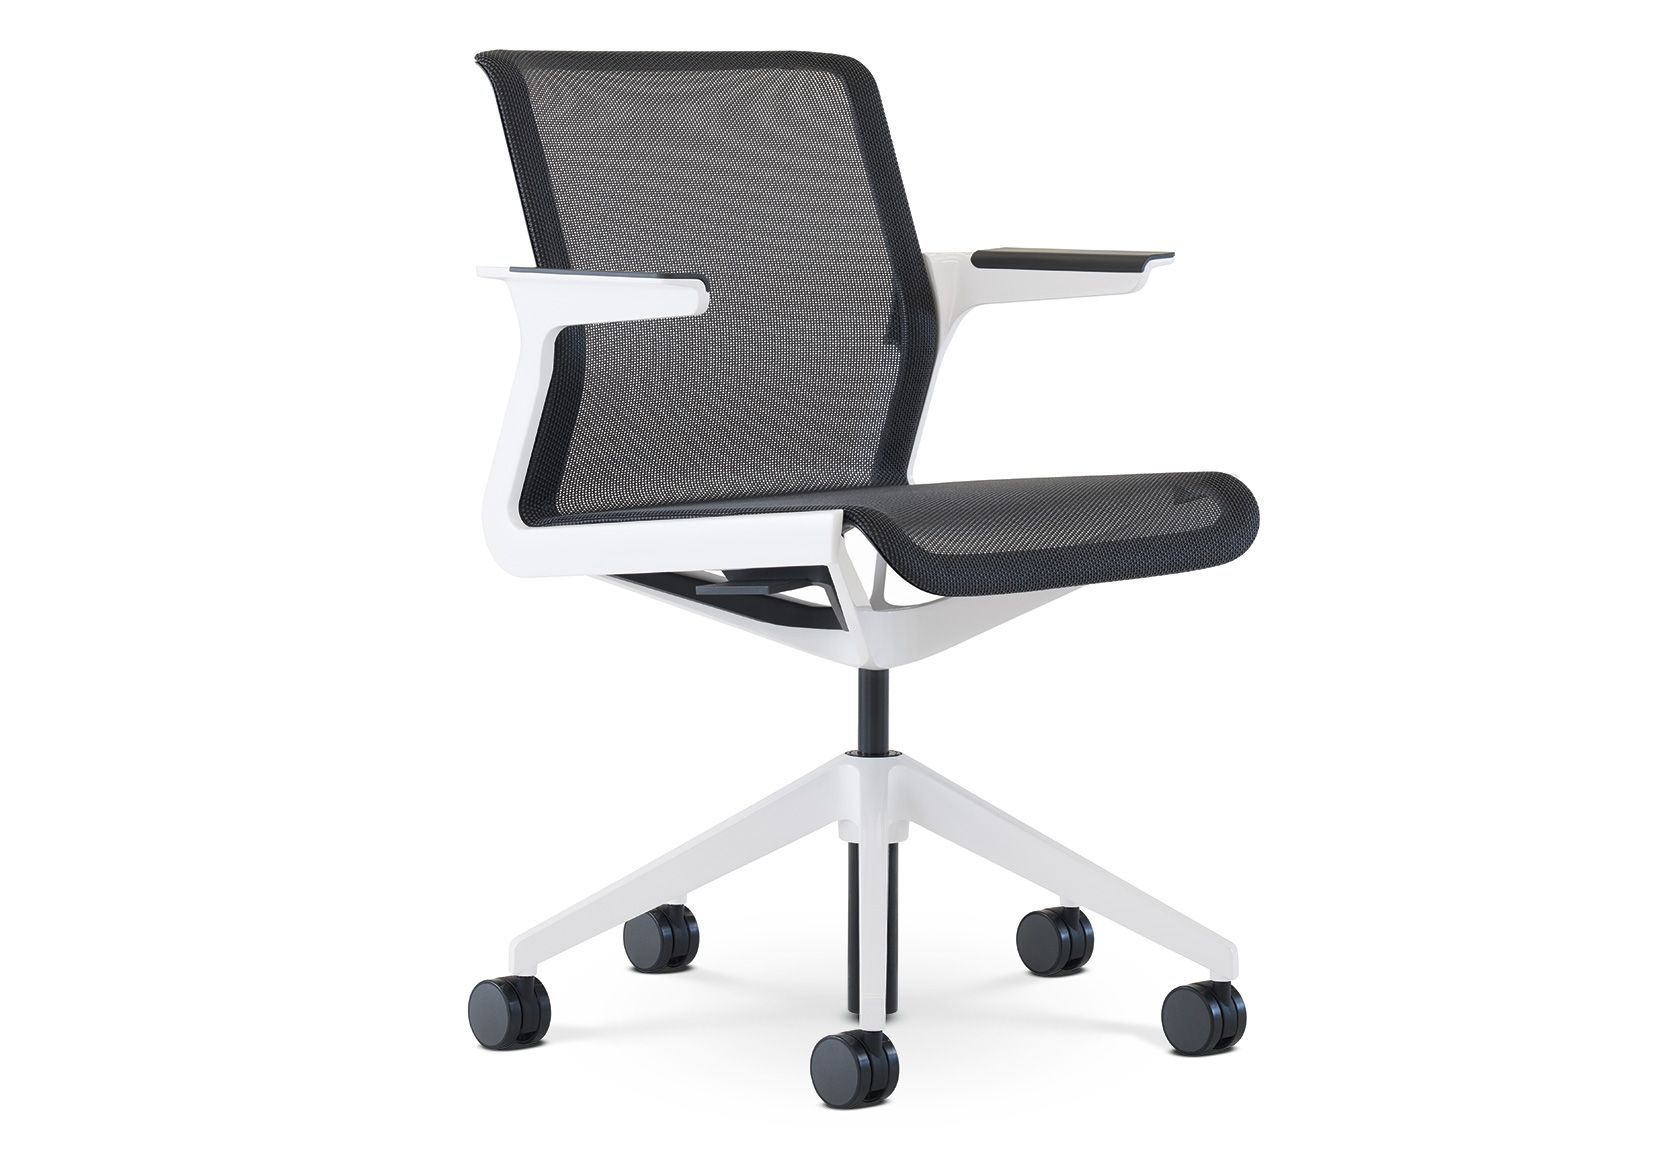 Allsteel clarity chair 668 with images conference